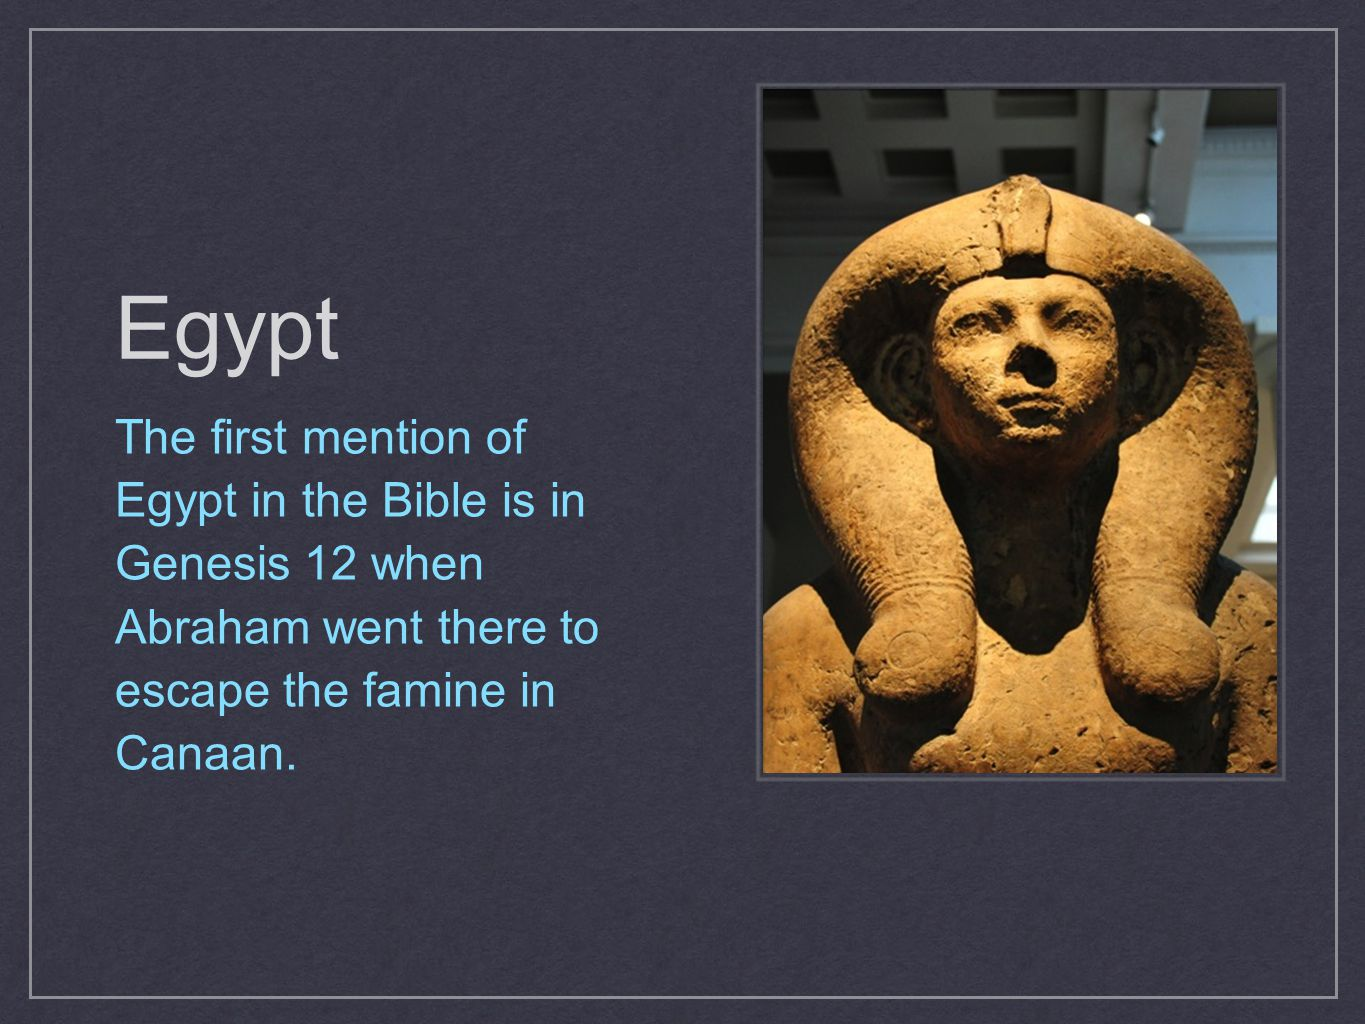 It was to Egypt that Jacob and his sons moved to escape the great famine after Joseph became vice- ruler, and Israel dwelt there for 400 years before departing under the leadership of Moses.